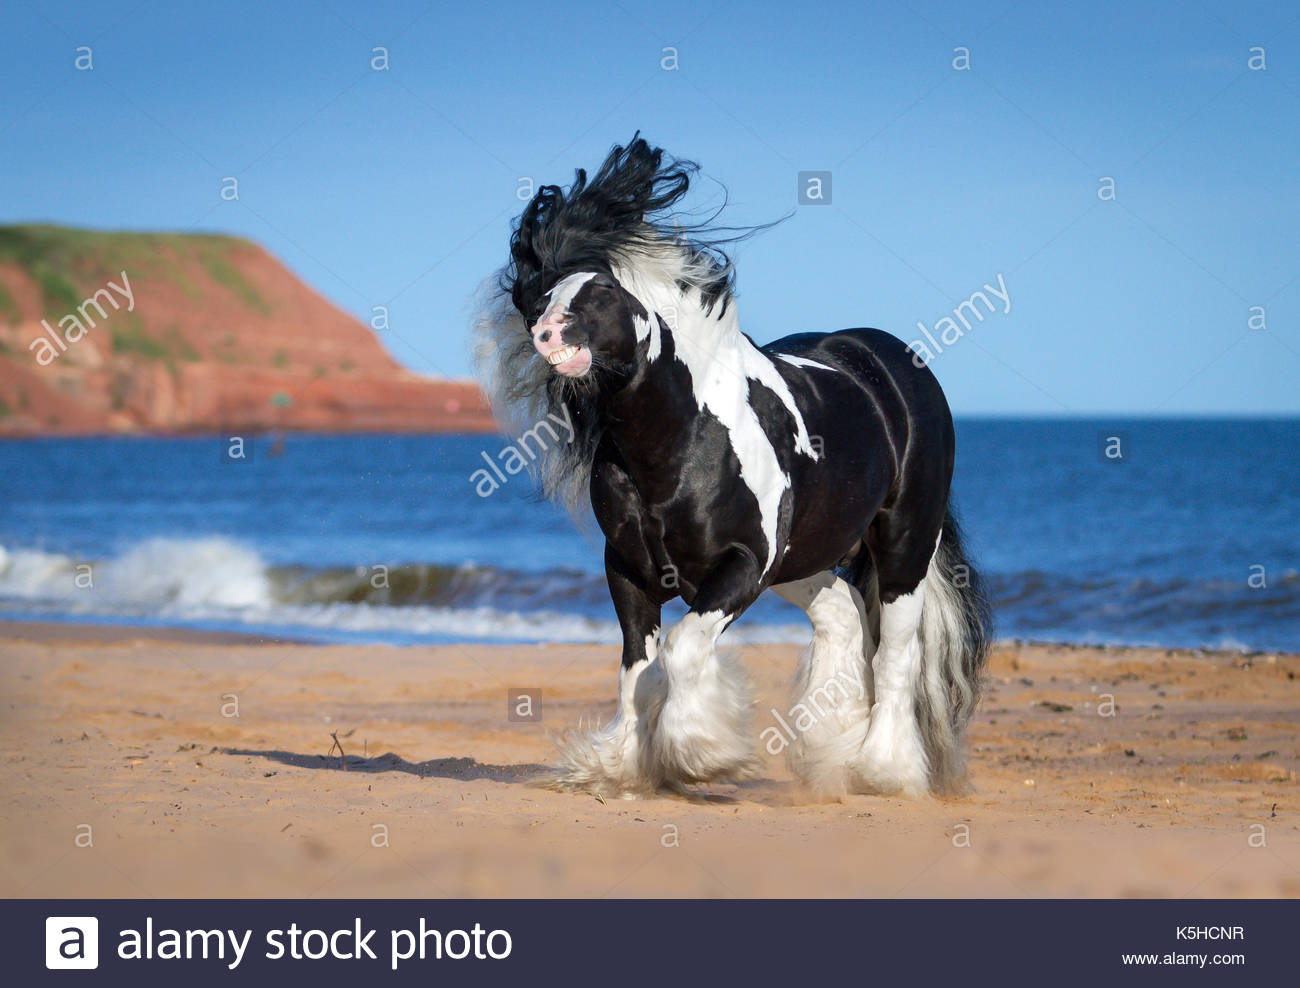 Gypsy CHorse Cob Vanner stallion on the beach - Stock Image